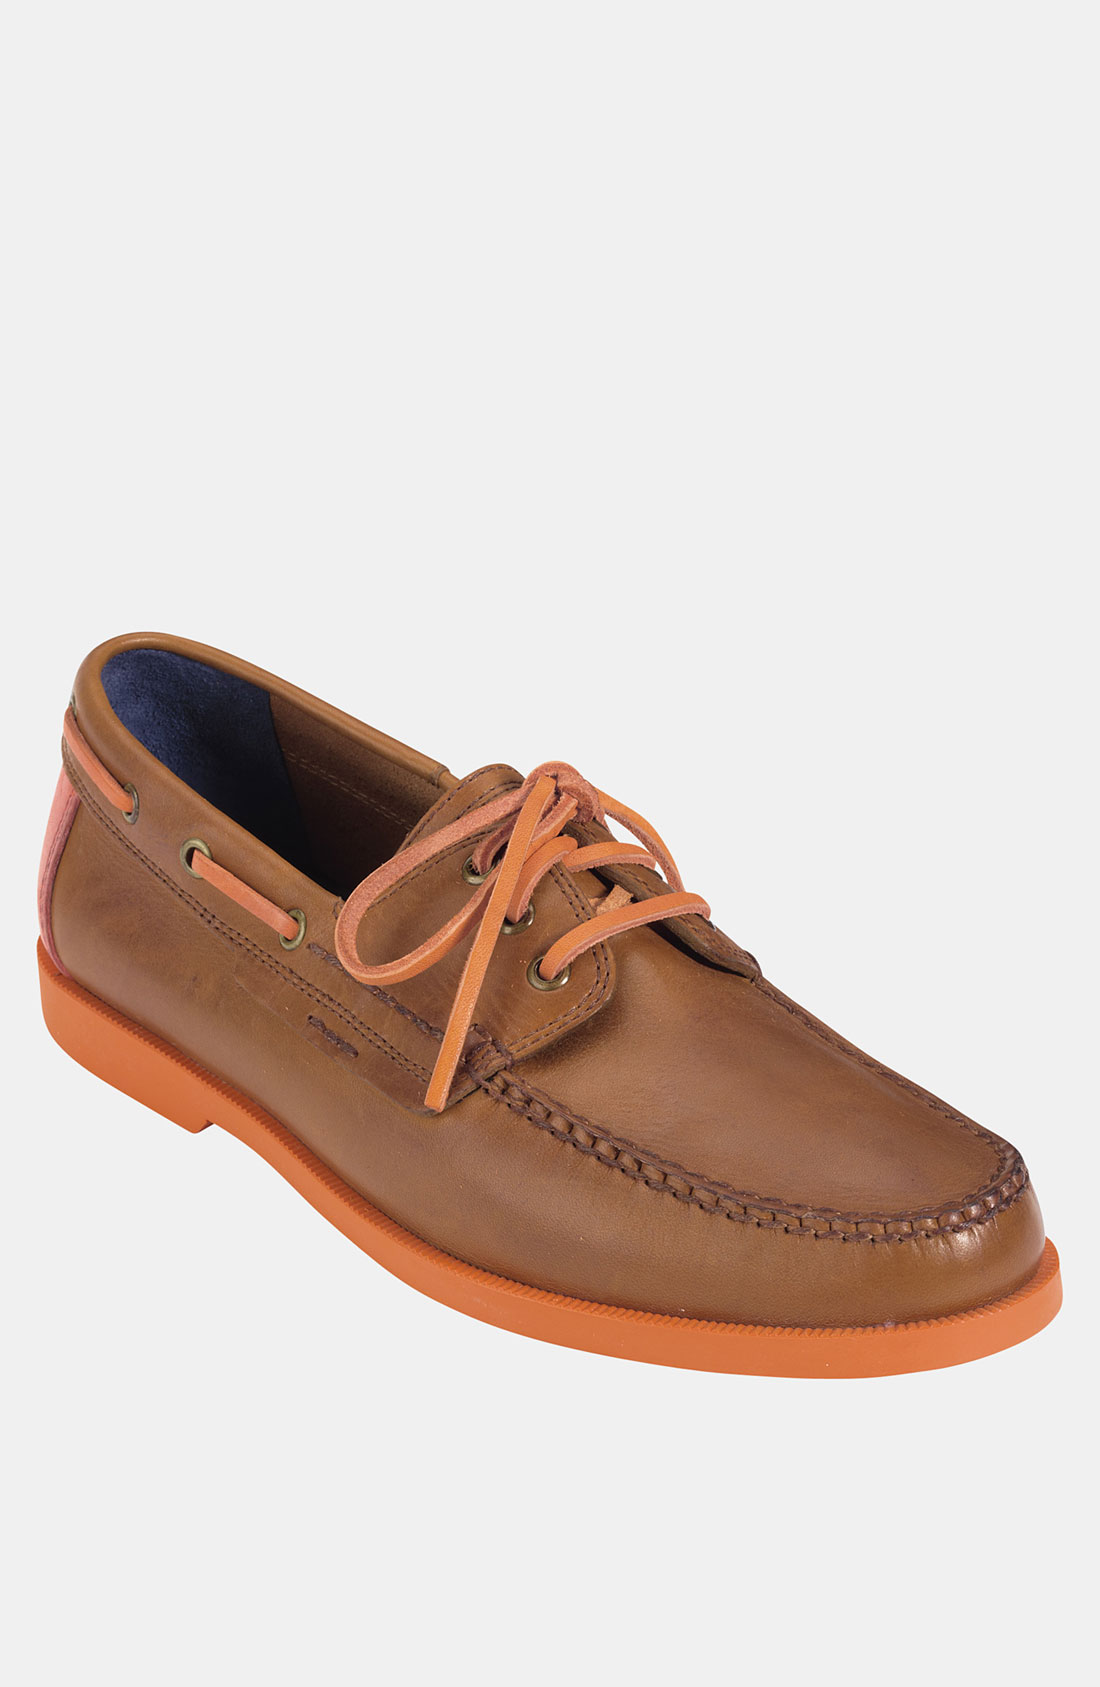 Nordstrom Shoes Mens Boat Shoes